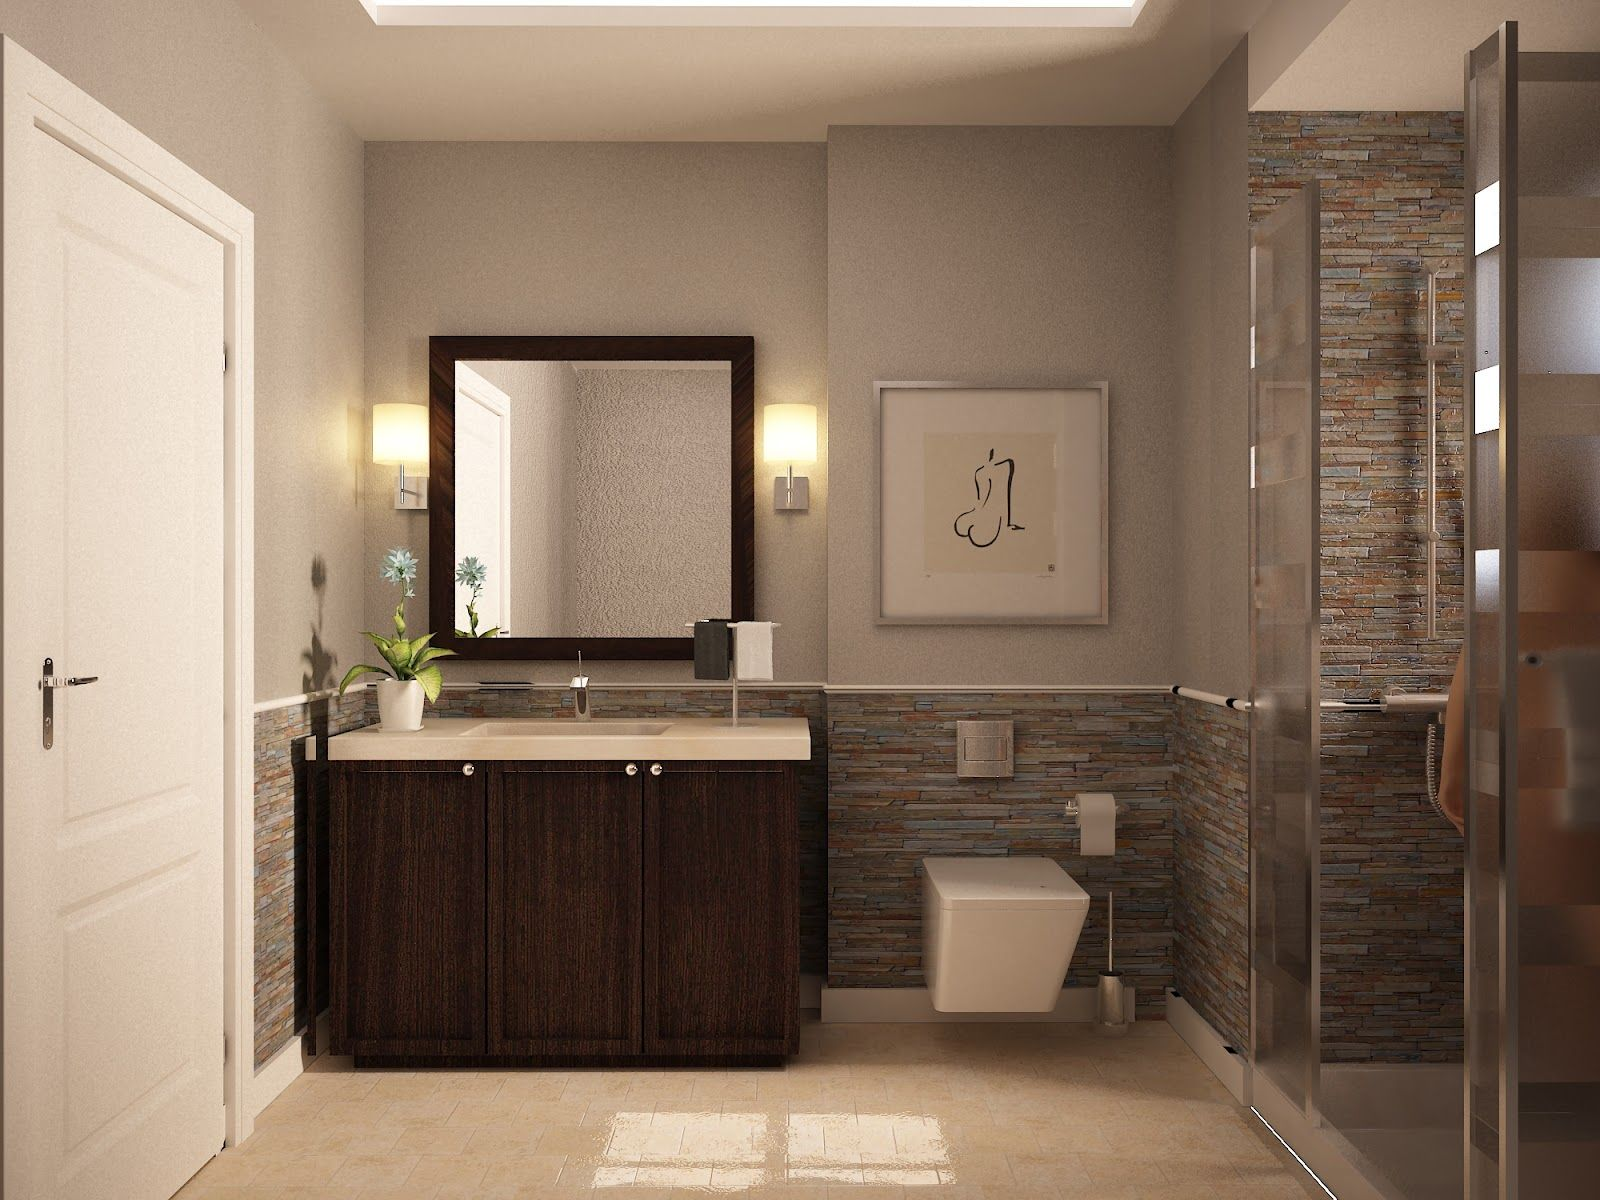 Brown bathroom paint ideas - Best Bathroom Paint Colors Elegant Small Bathroom Color Schemes With Wooden Vanity With White Top